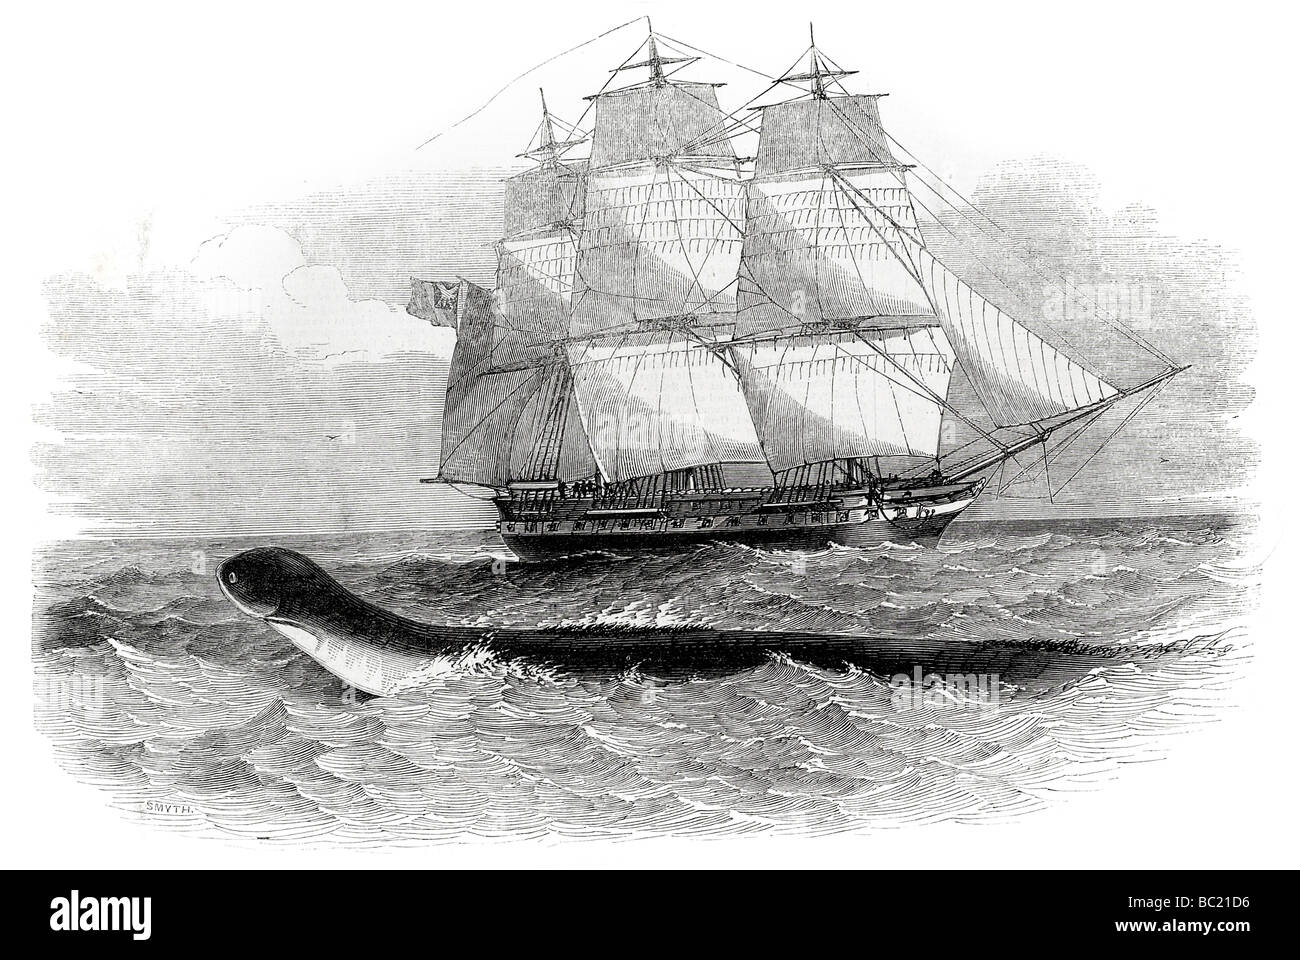 the sea serpent when first seen from h m s daedalus - Stock Image